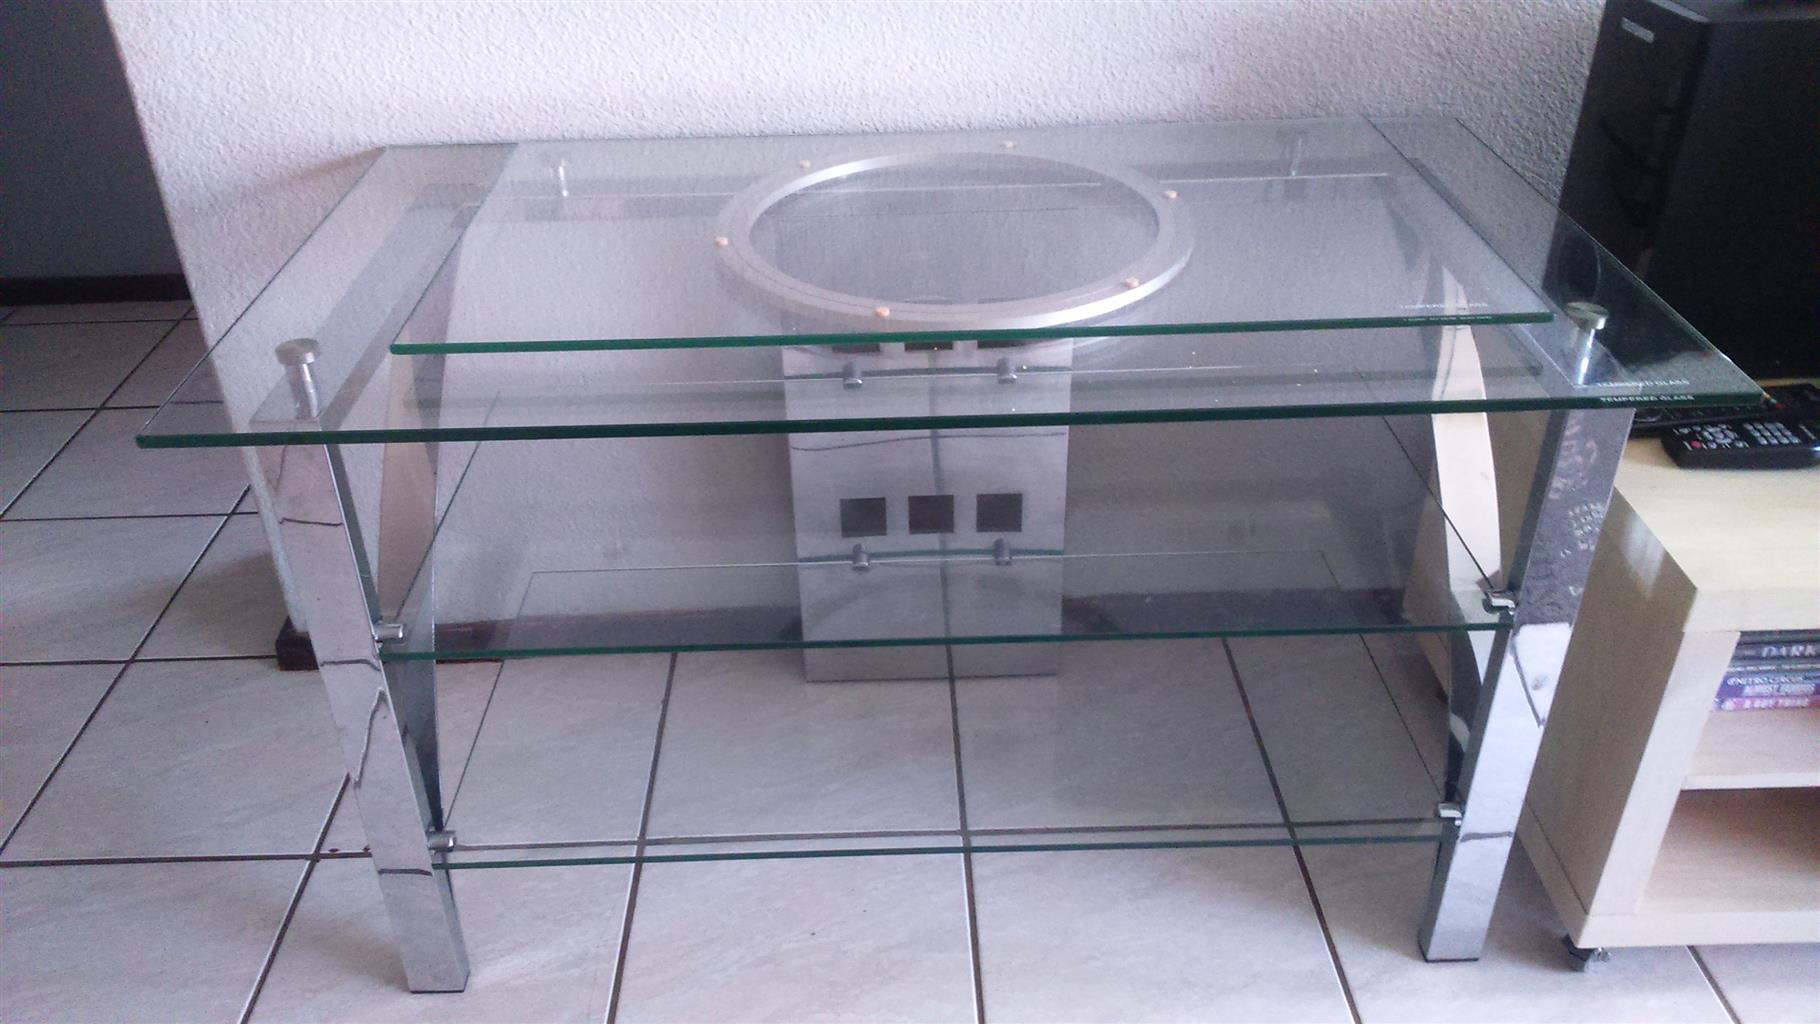 Chrome and glass Tv stand with swivel top tempered glass and chrome frame